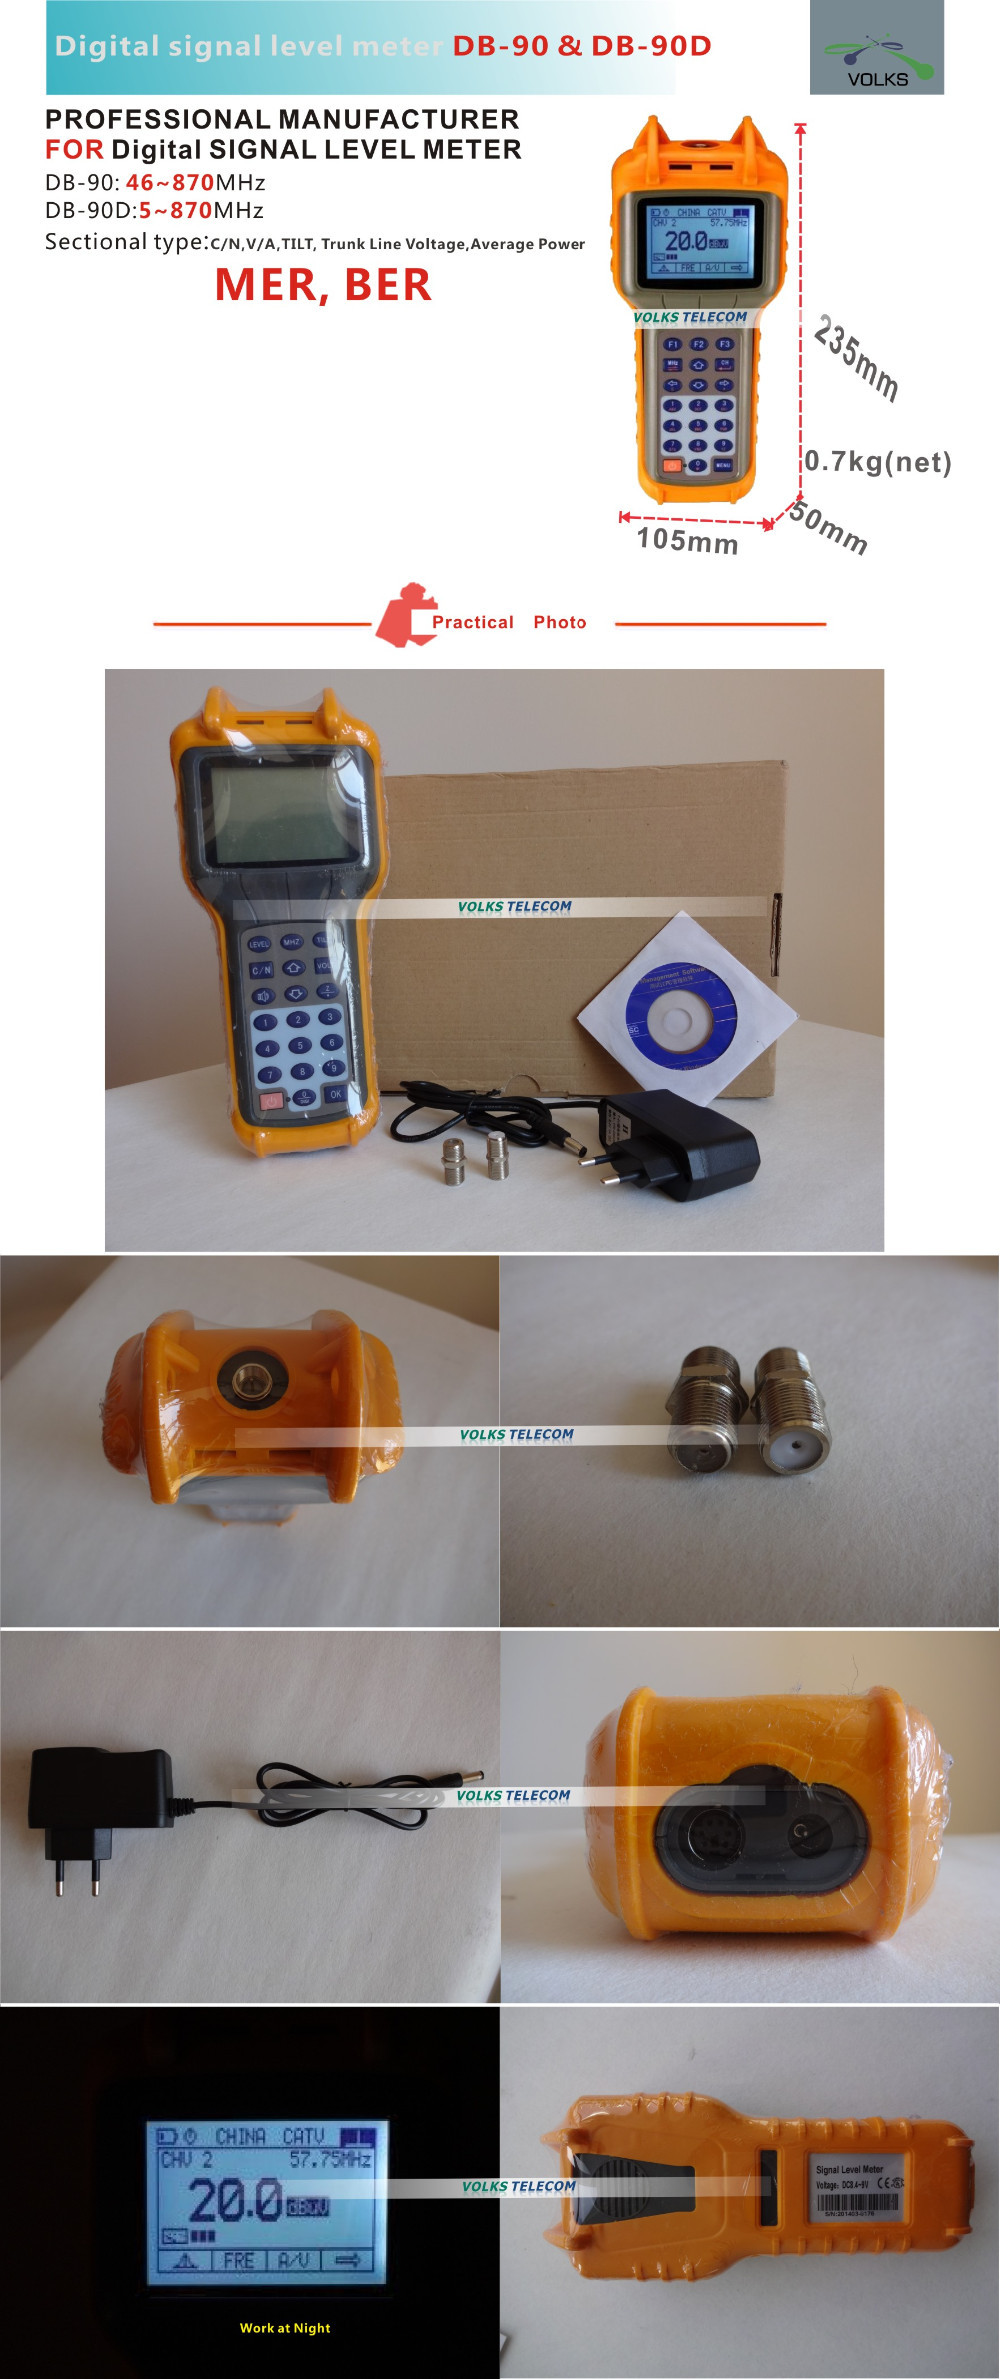 QAM CATV Digital MER, BER Signal Level Meter